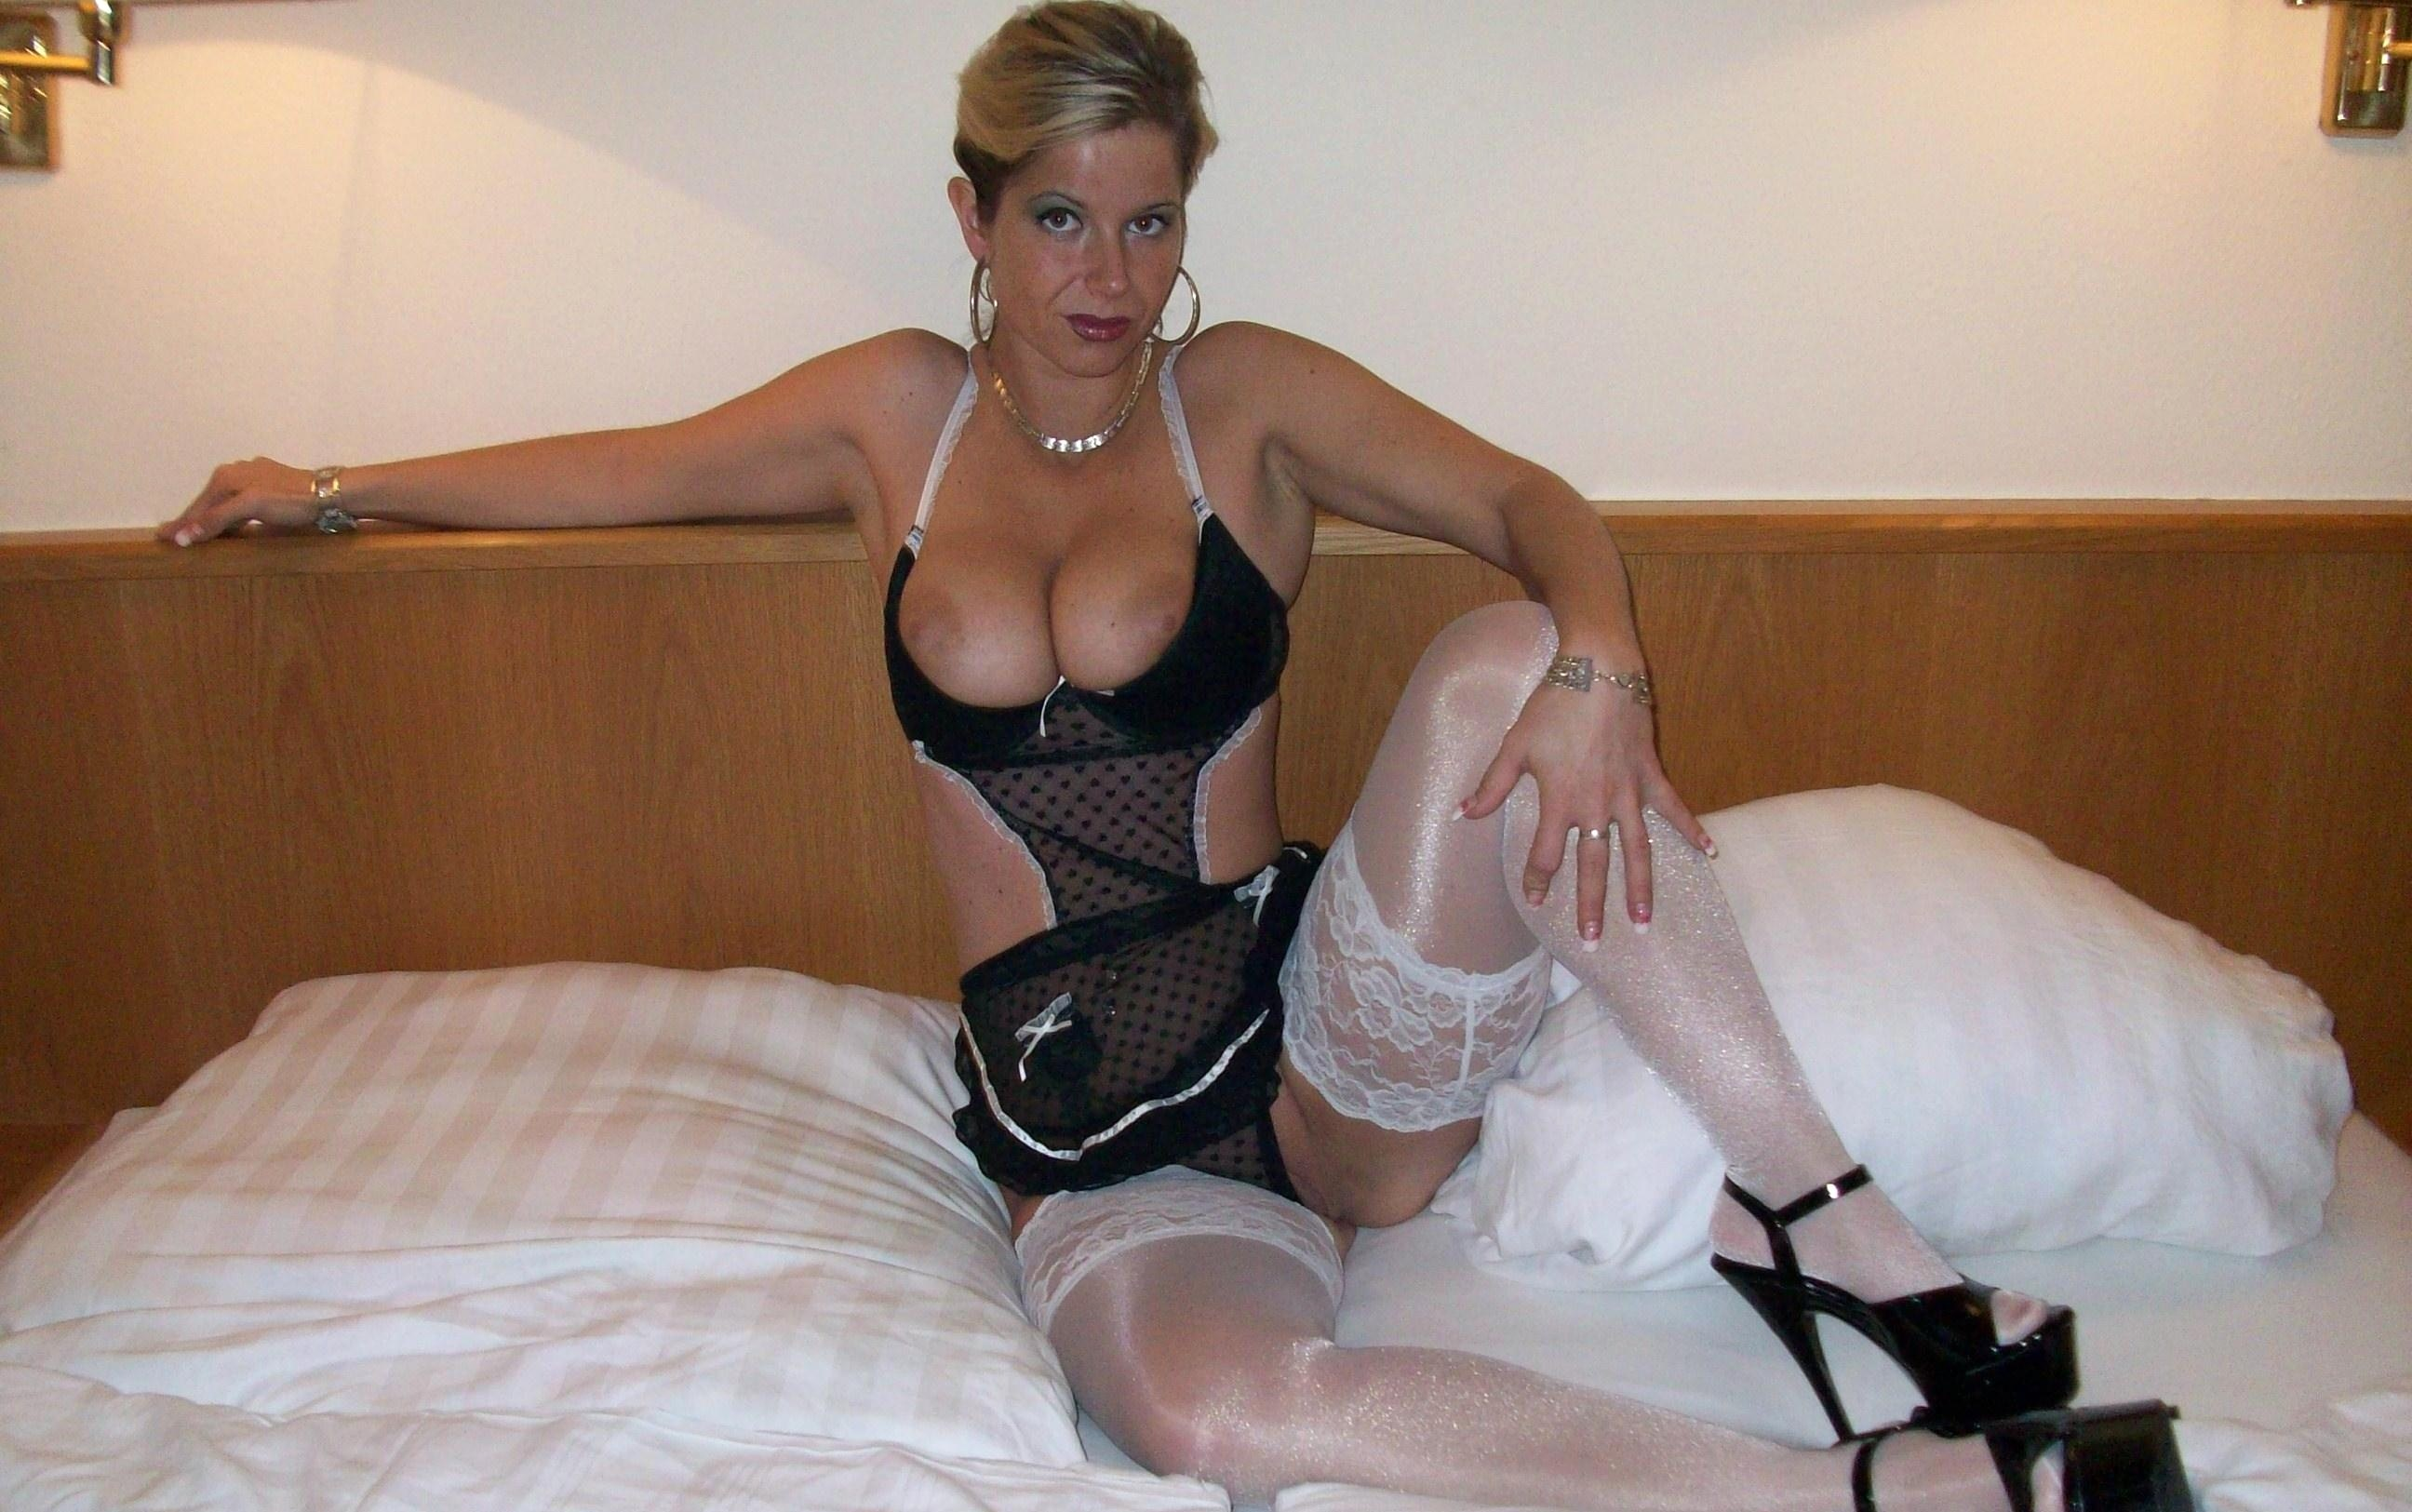 Amateur blonde white lingerie stockings accept. The